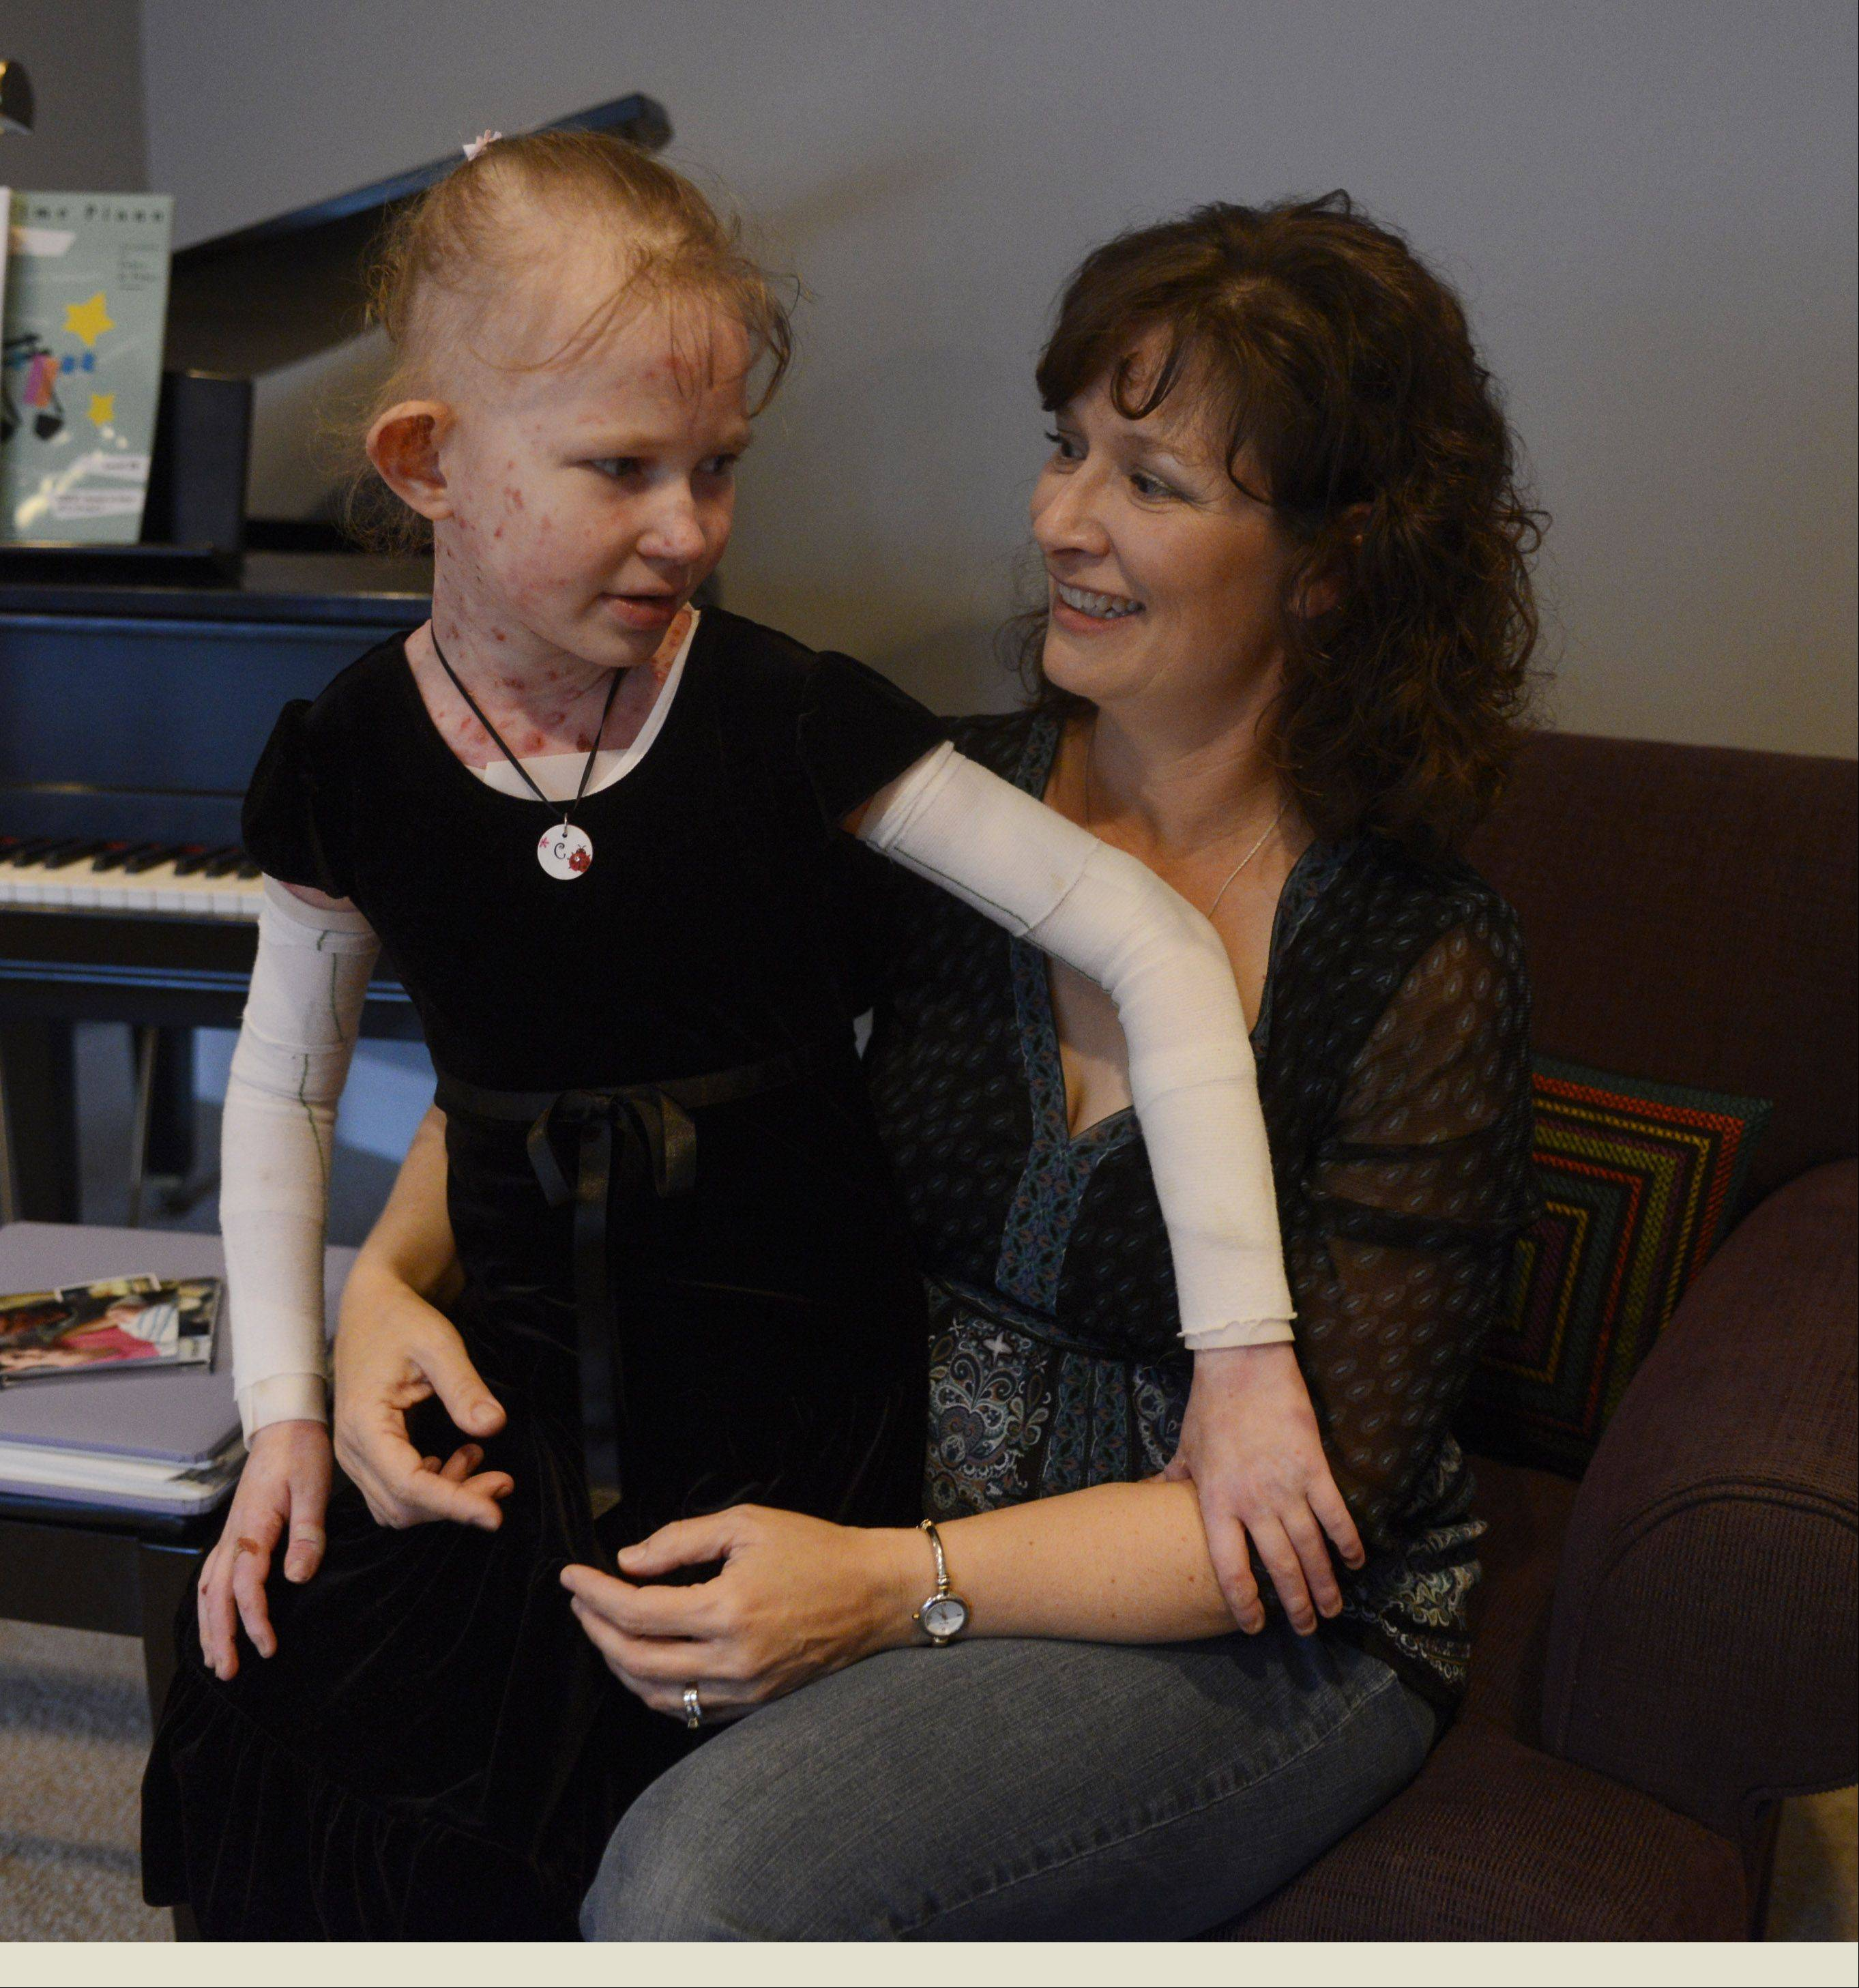 Caroline, her arms wrapped in protective bandages, shares a moment with her mom, Adrienne Provost, before a snack after school.